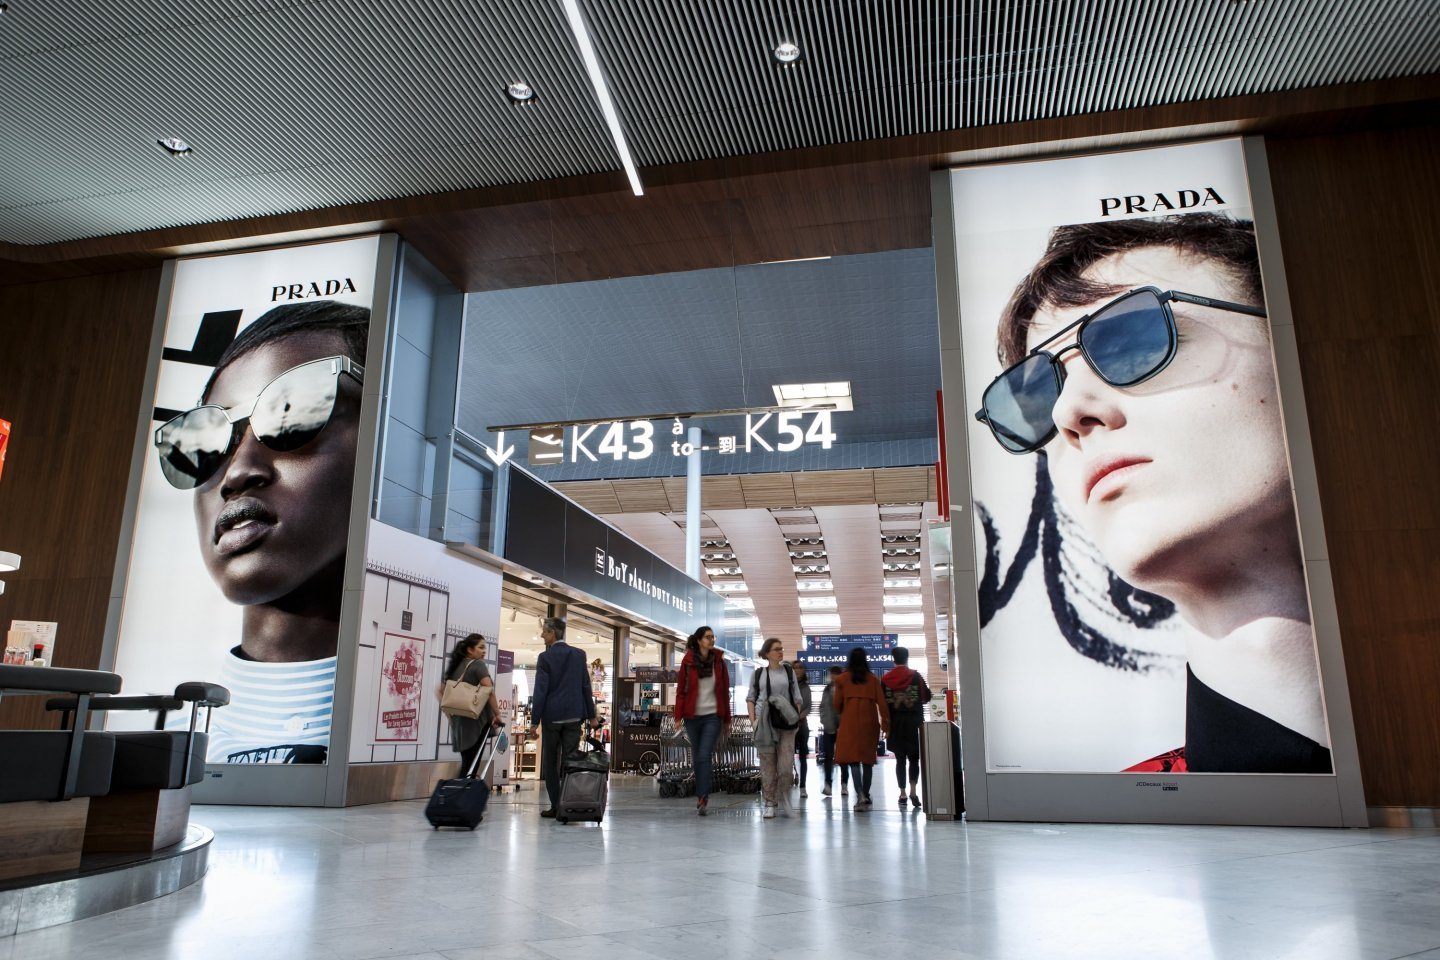 10 Reasons why airport advertising works, Prada, JCDecaux France, 2018 March